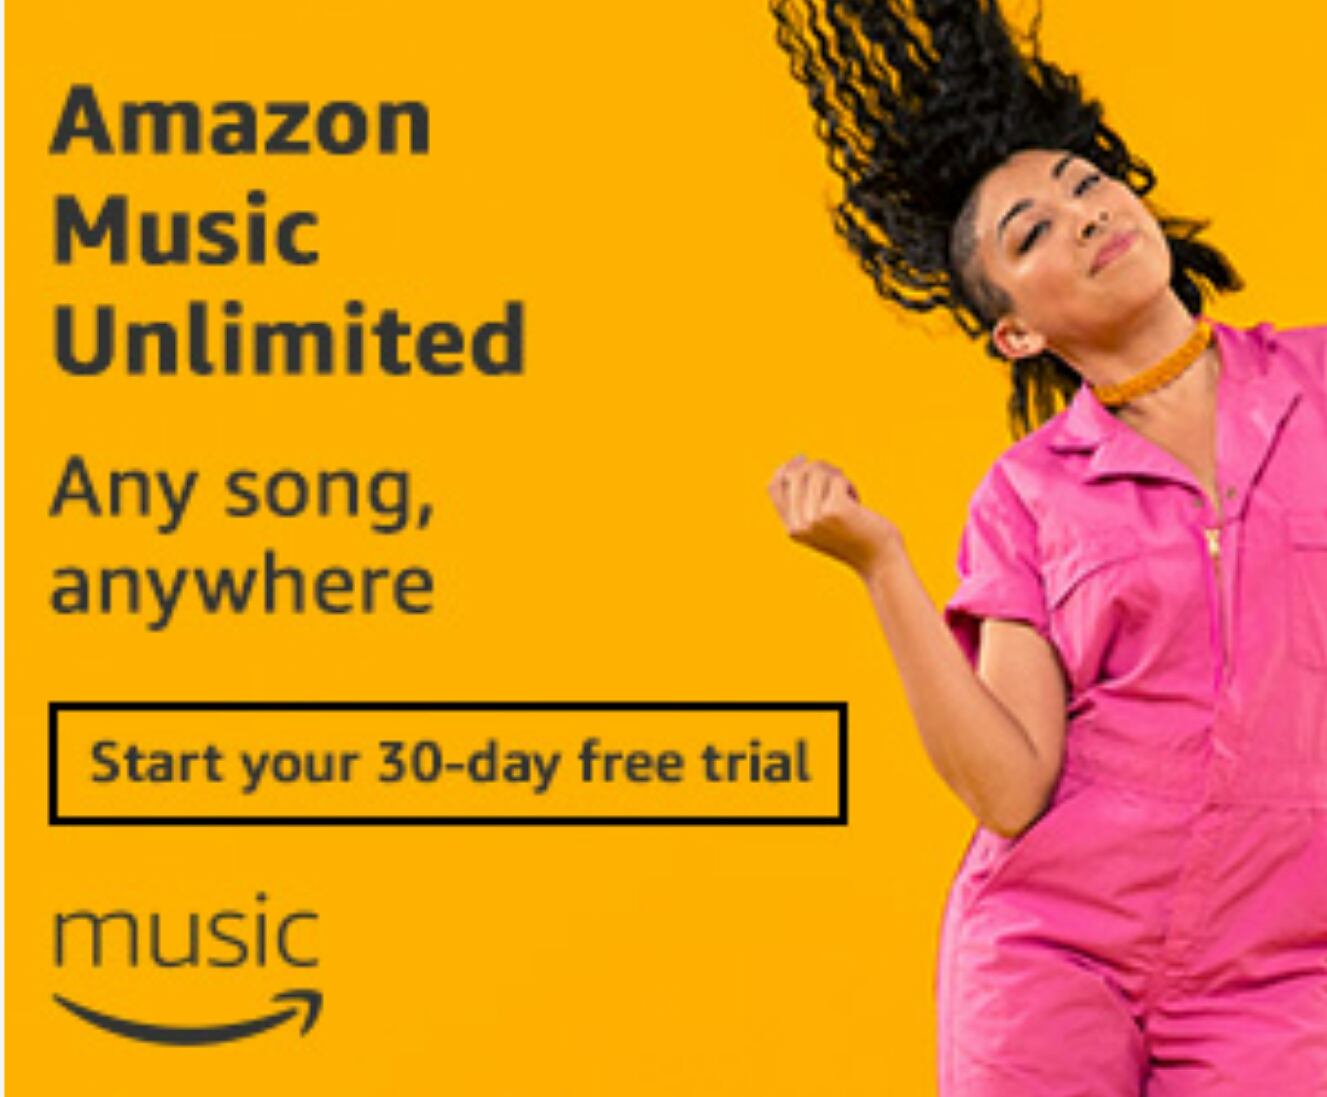 amazon_music_free_trial